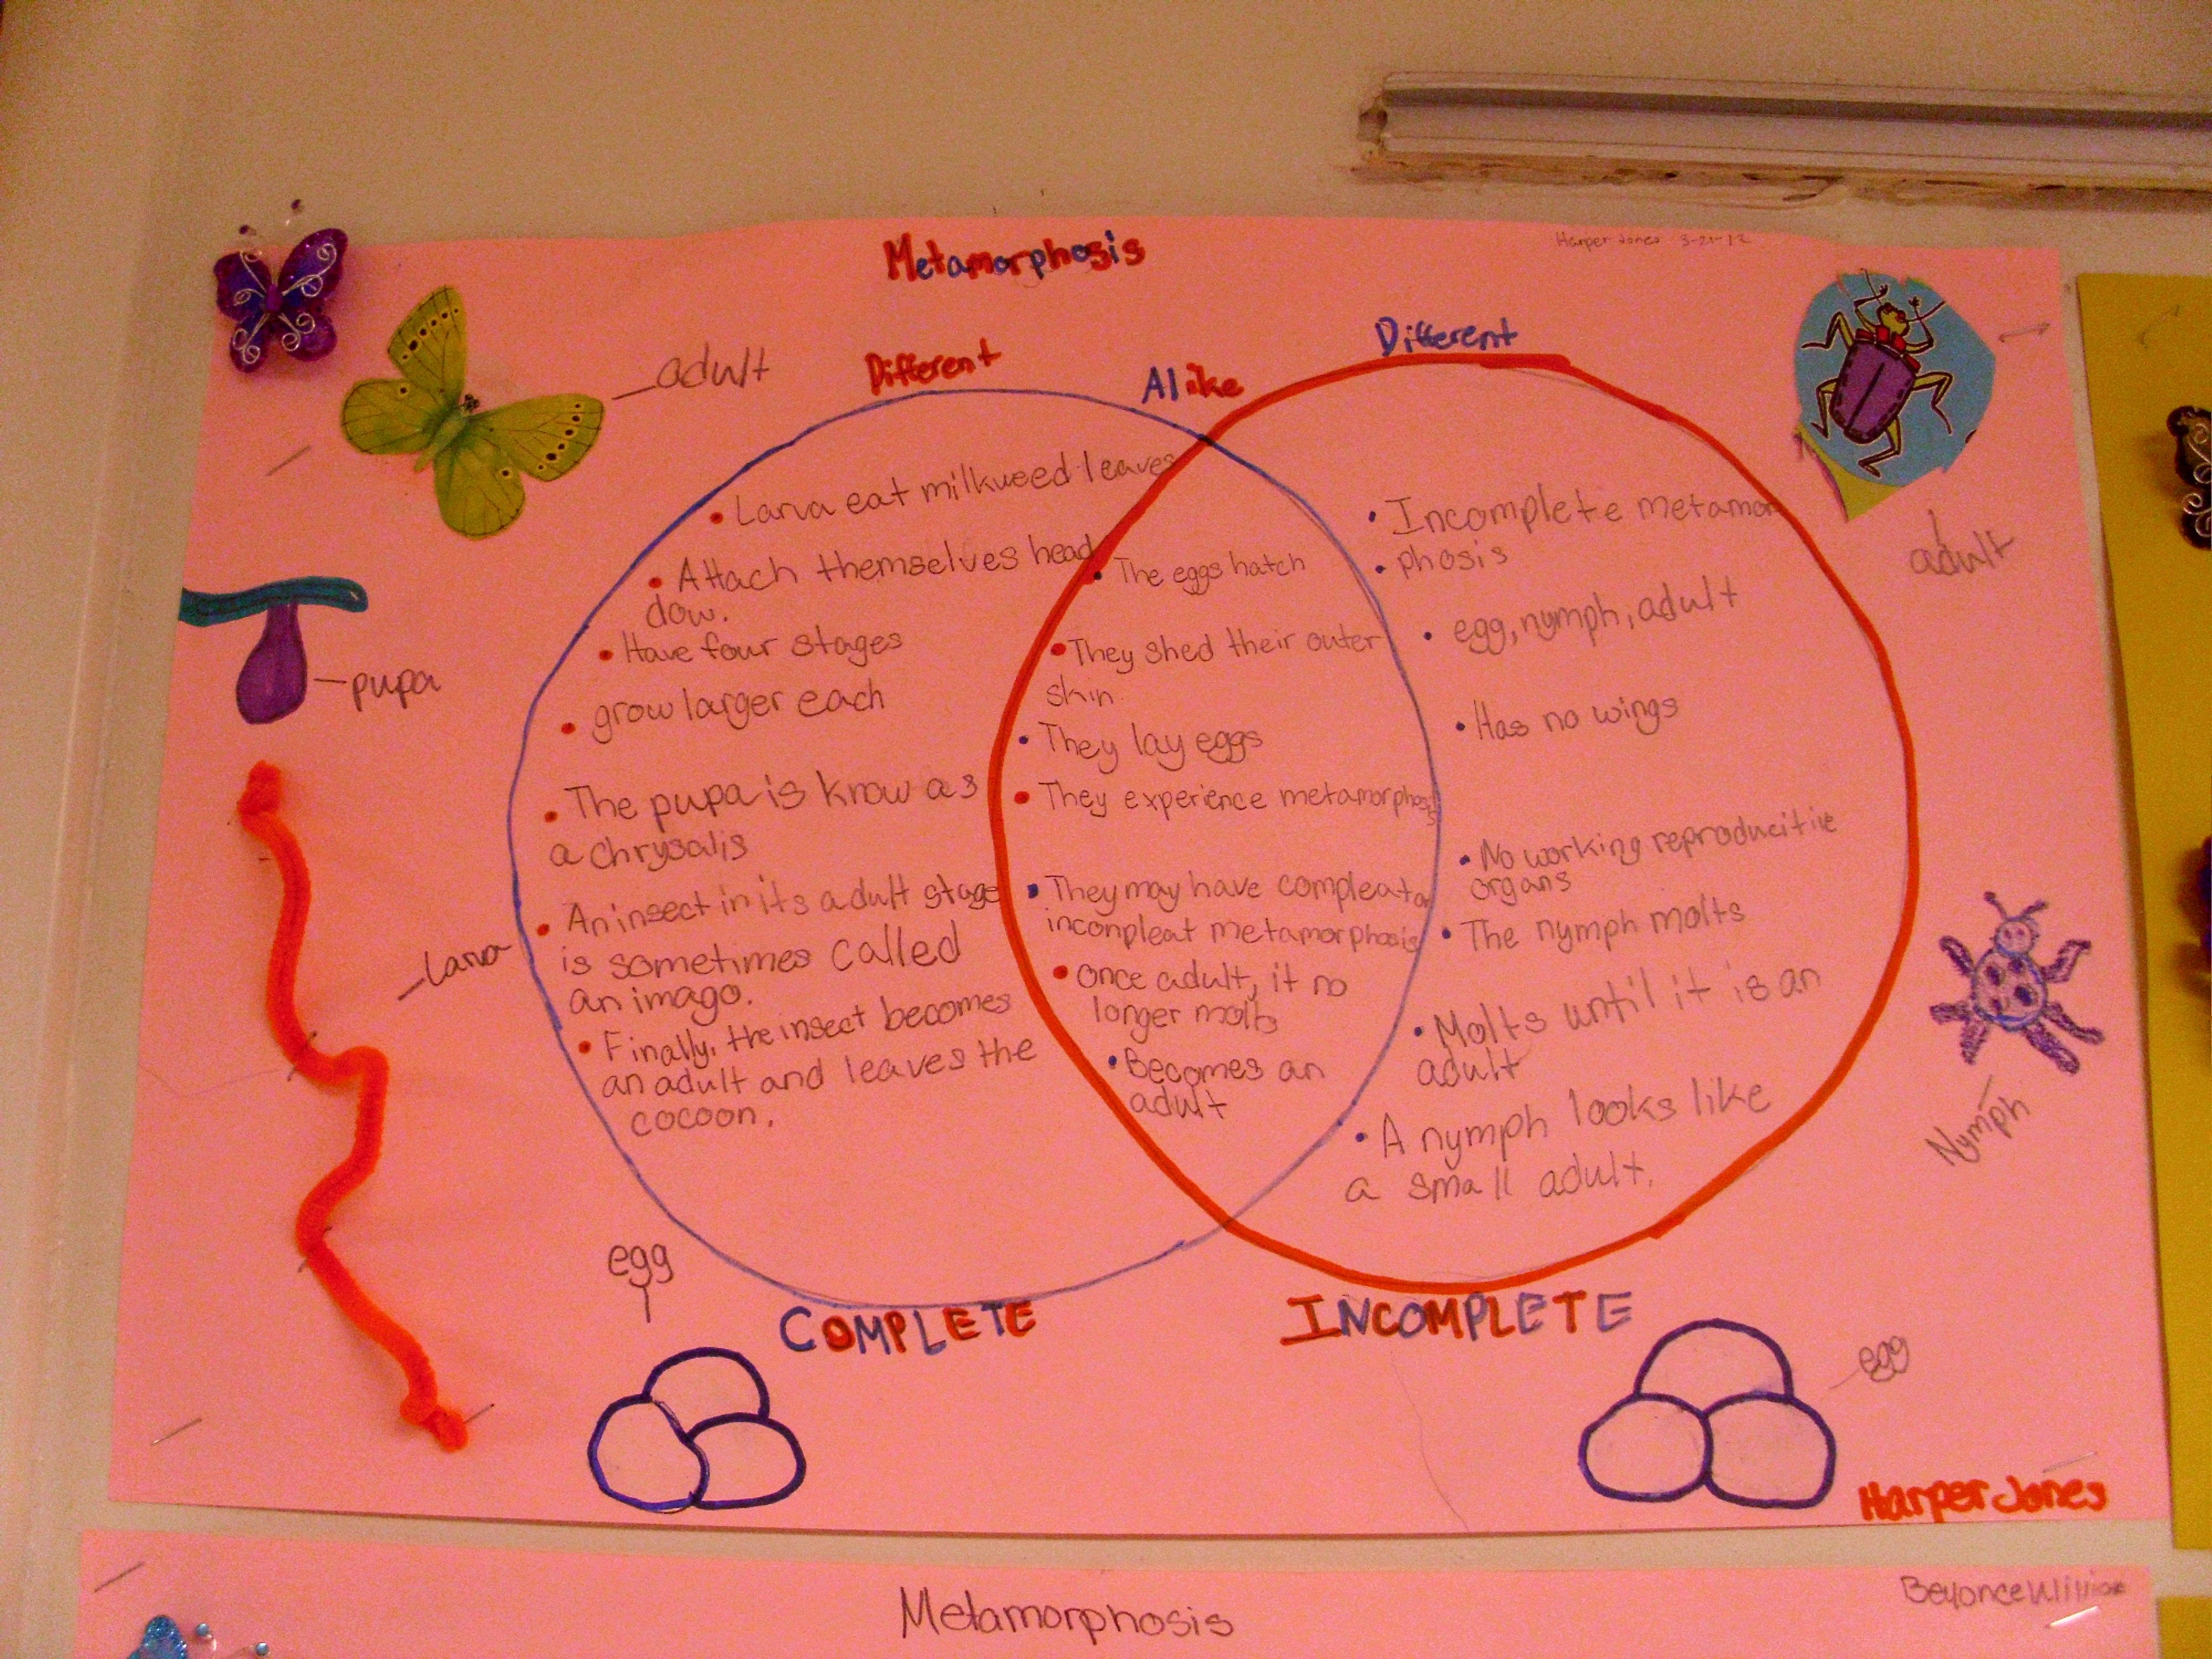 complete and incomplete metamorphosis venn diagram fourth grade science elementary science science education  [ 4000 x 3000 Pixel ]